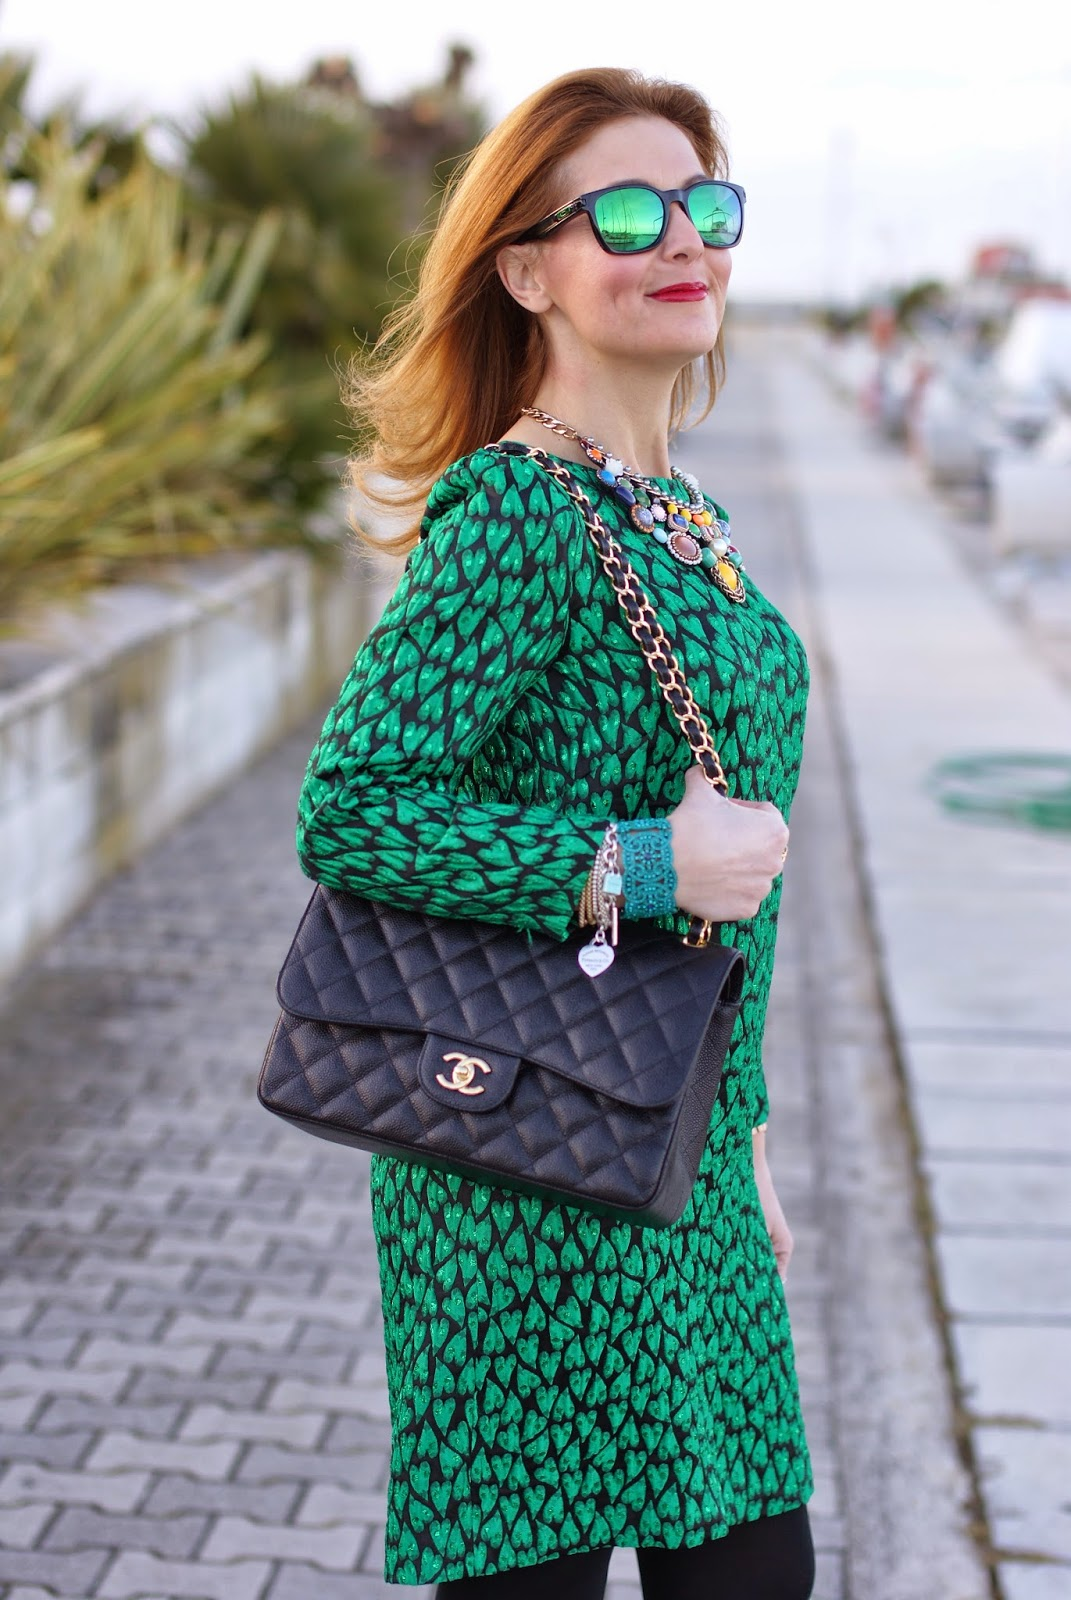 Mauro Grifoni tubino verde, Chanel 2.55 classic flap bag, Dolce & Gabbana Coco ankle boots, Fashion and Cookies fashion blog, fashion blogger italiana